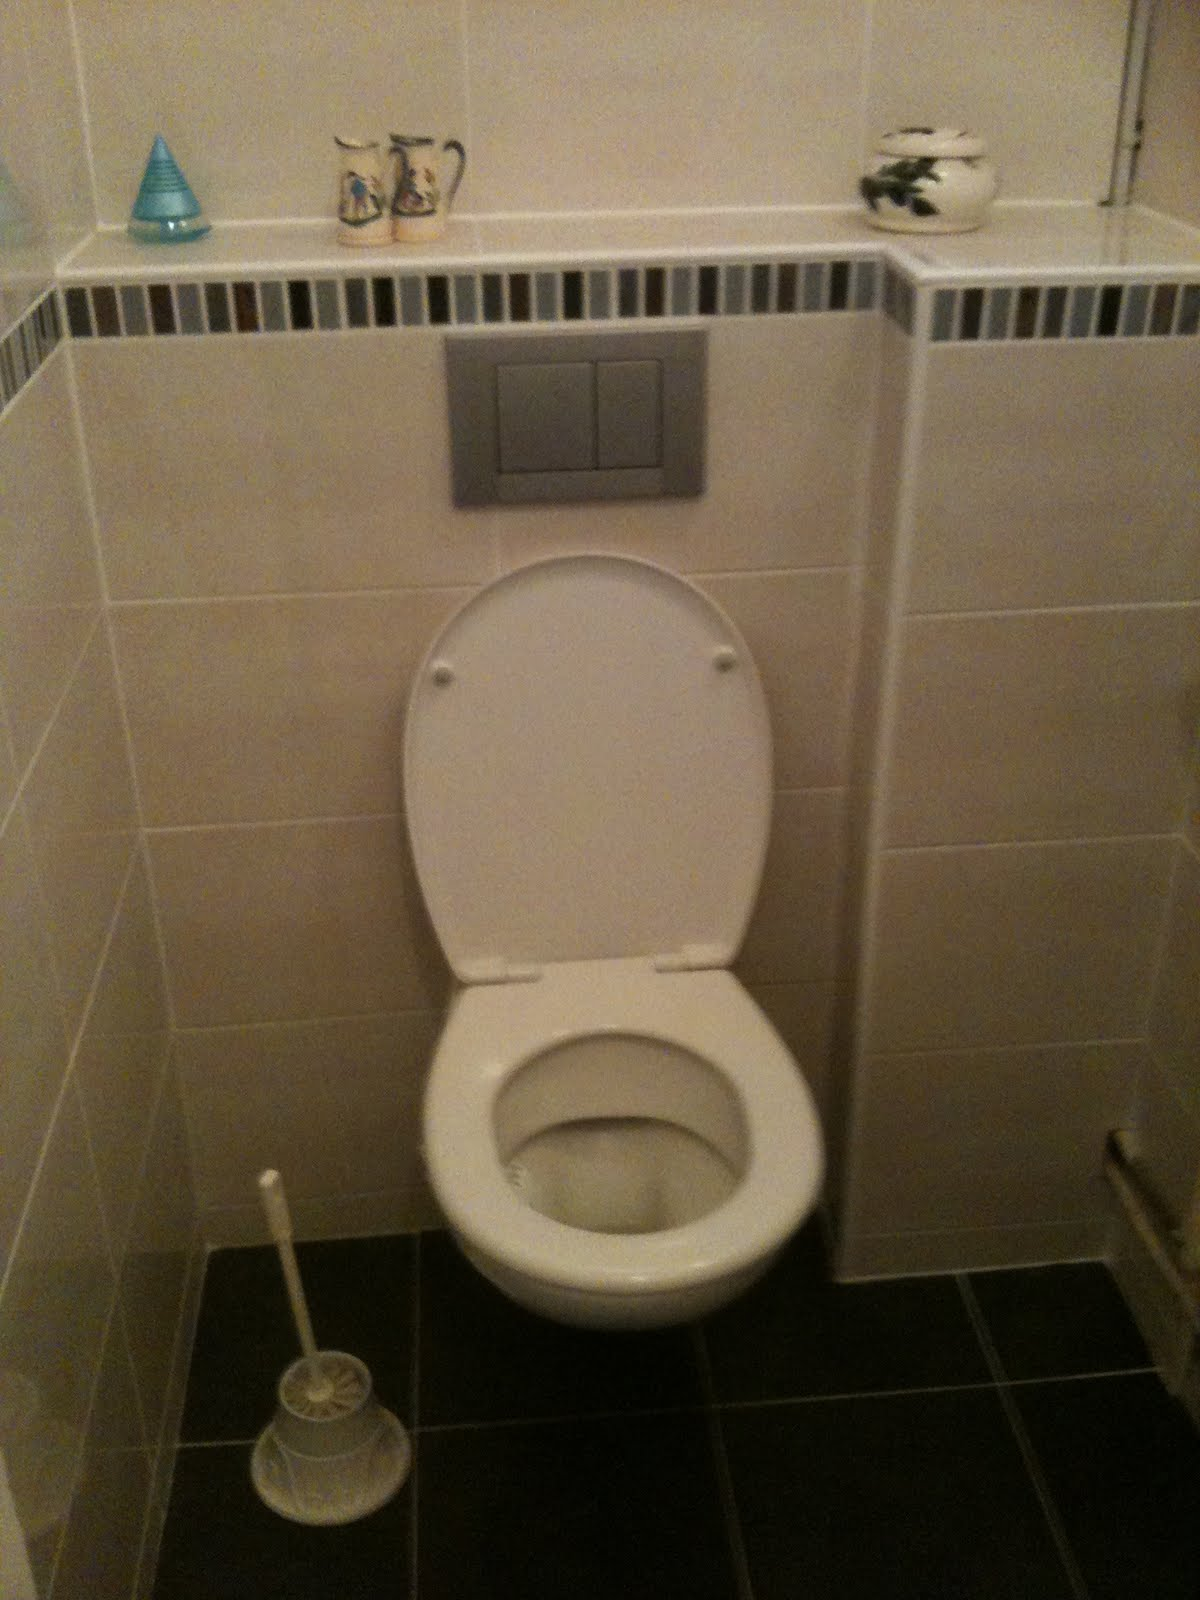 Wc suspendu carrelage meilleures images d 39 inspiration for Carrelage de wc